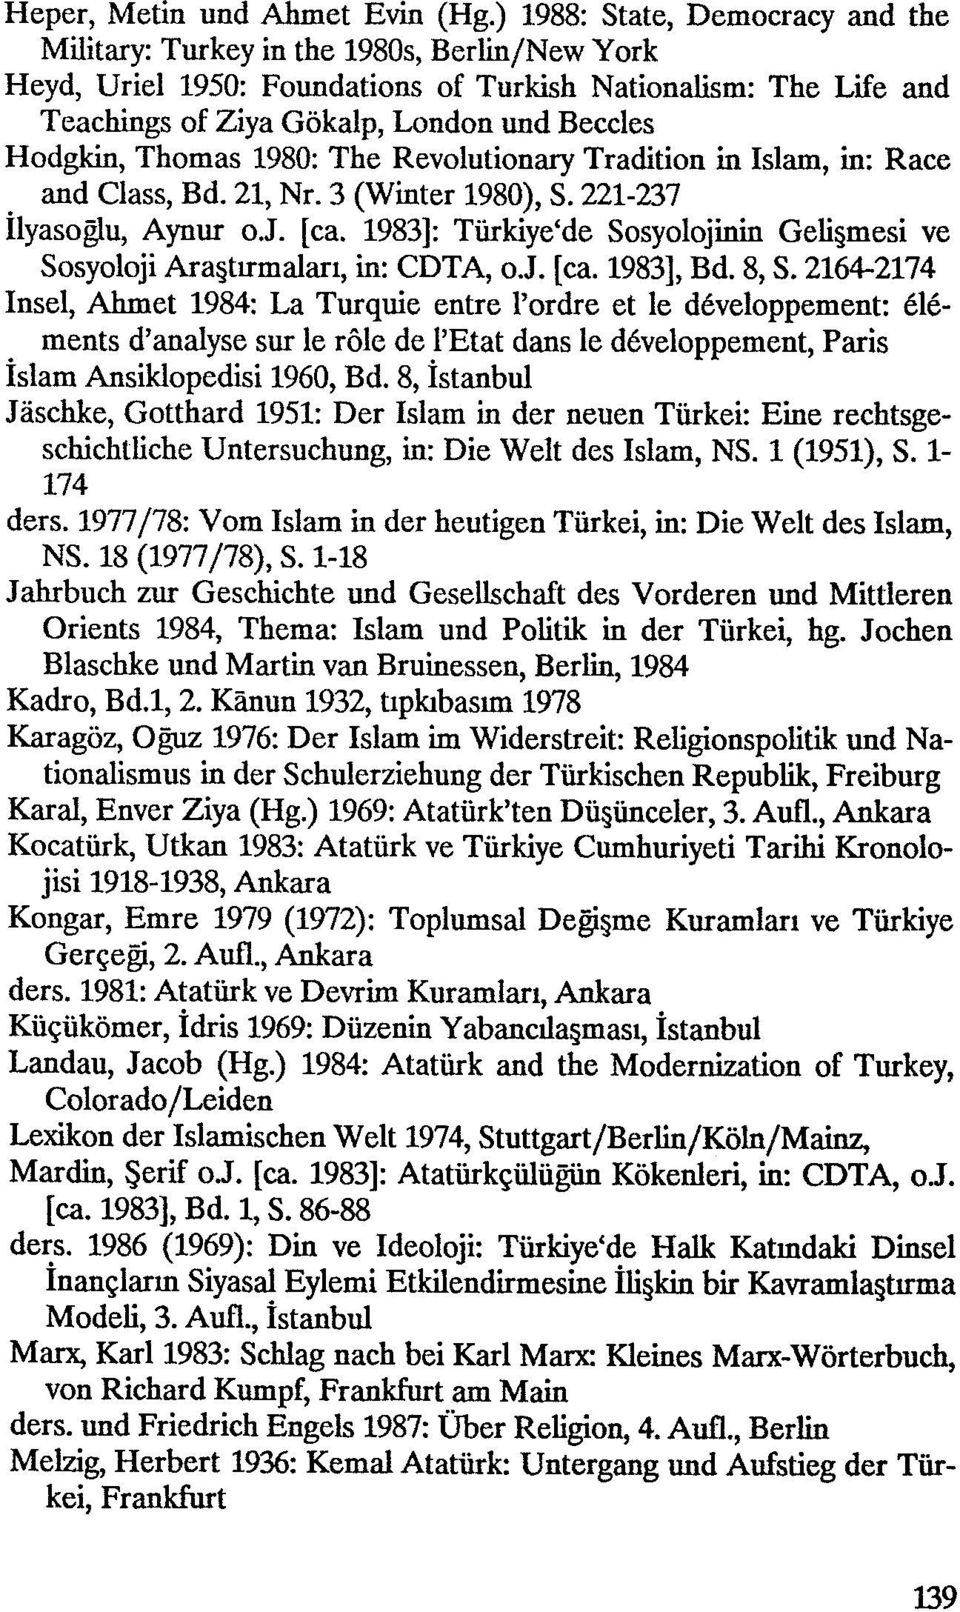 Hodgkin, Thomas 1980: The Revolutionary Tradition in Islam, in: Race and Class, Bd. 21, Nr. 3 (Winter 1980), S. 221-237 ilyasoglu, Aynur oj. [ca.